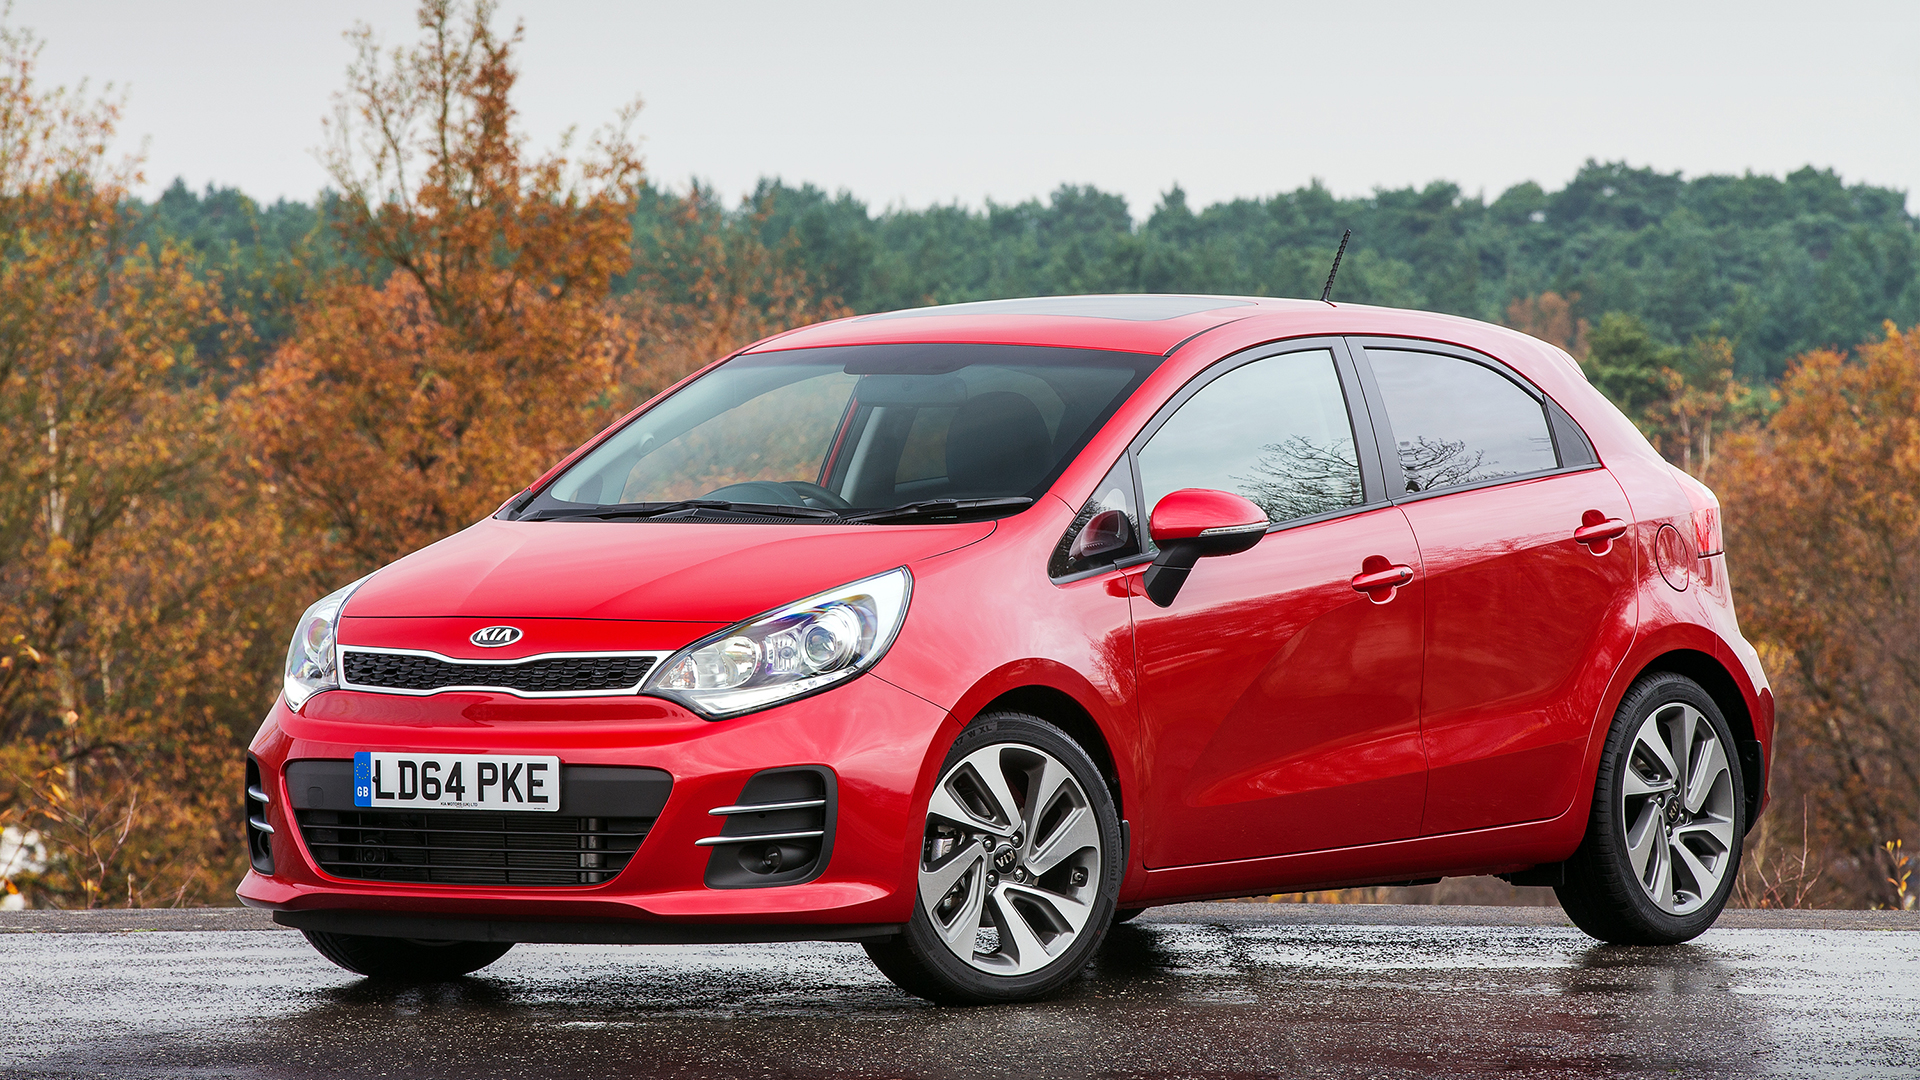 find used kia rio cars for sale on auto trader uk